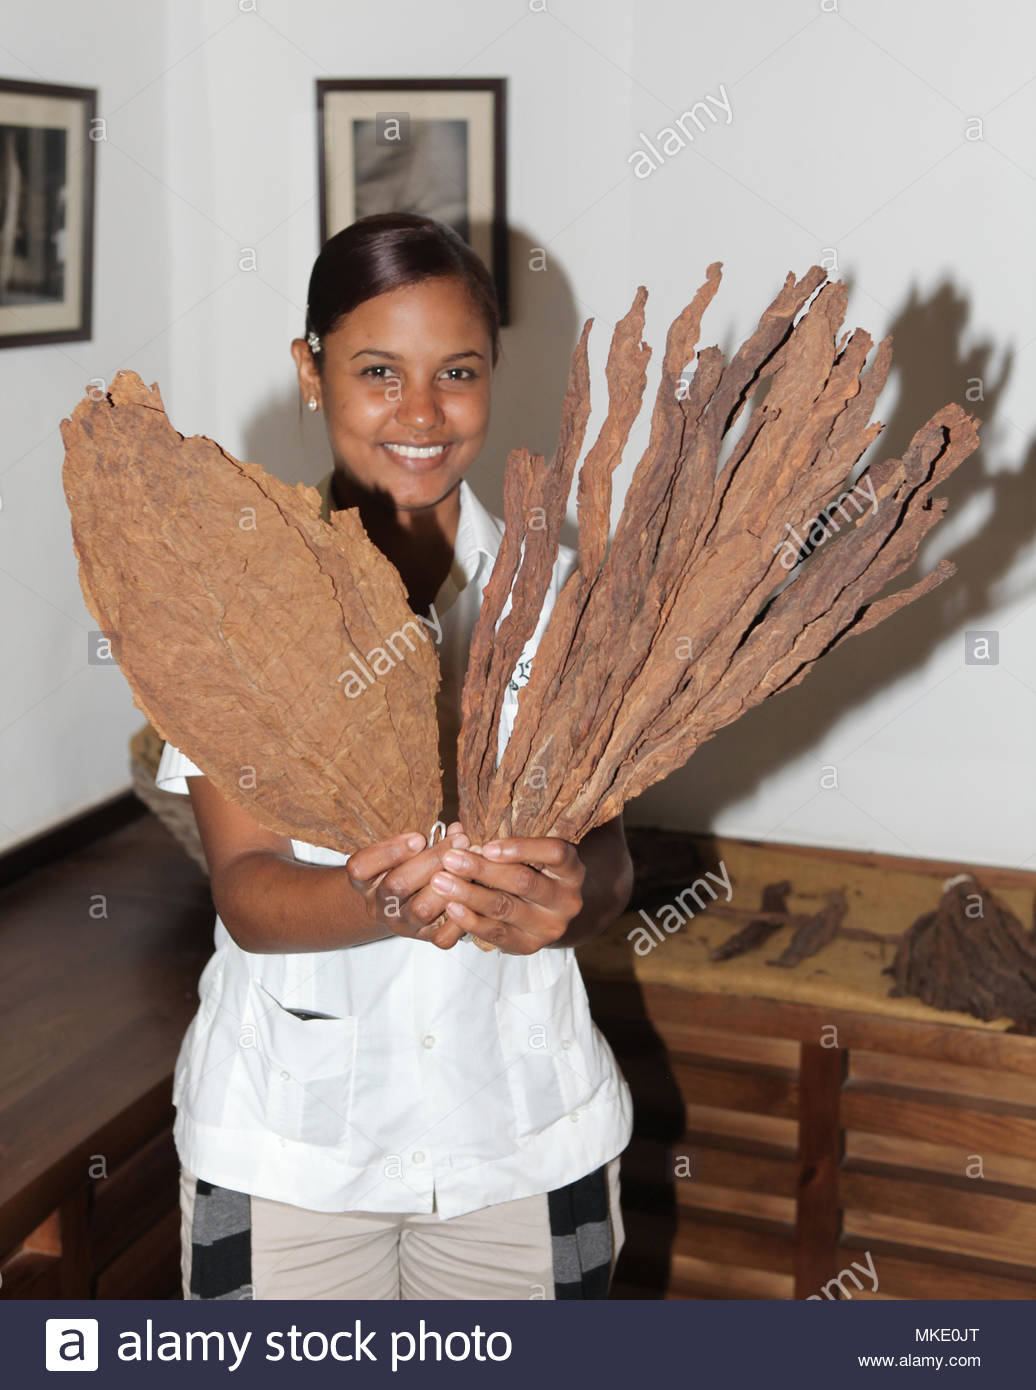 Employee shows processed and unprocessed tobacco leaves at the LaFlor Dominicana Cigar Factory in the Dominican Republic. - Stock Image